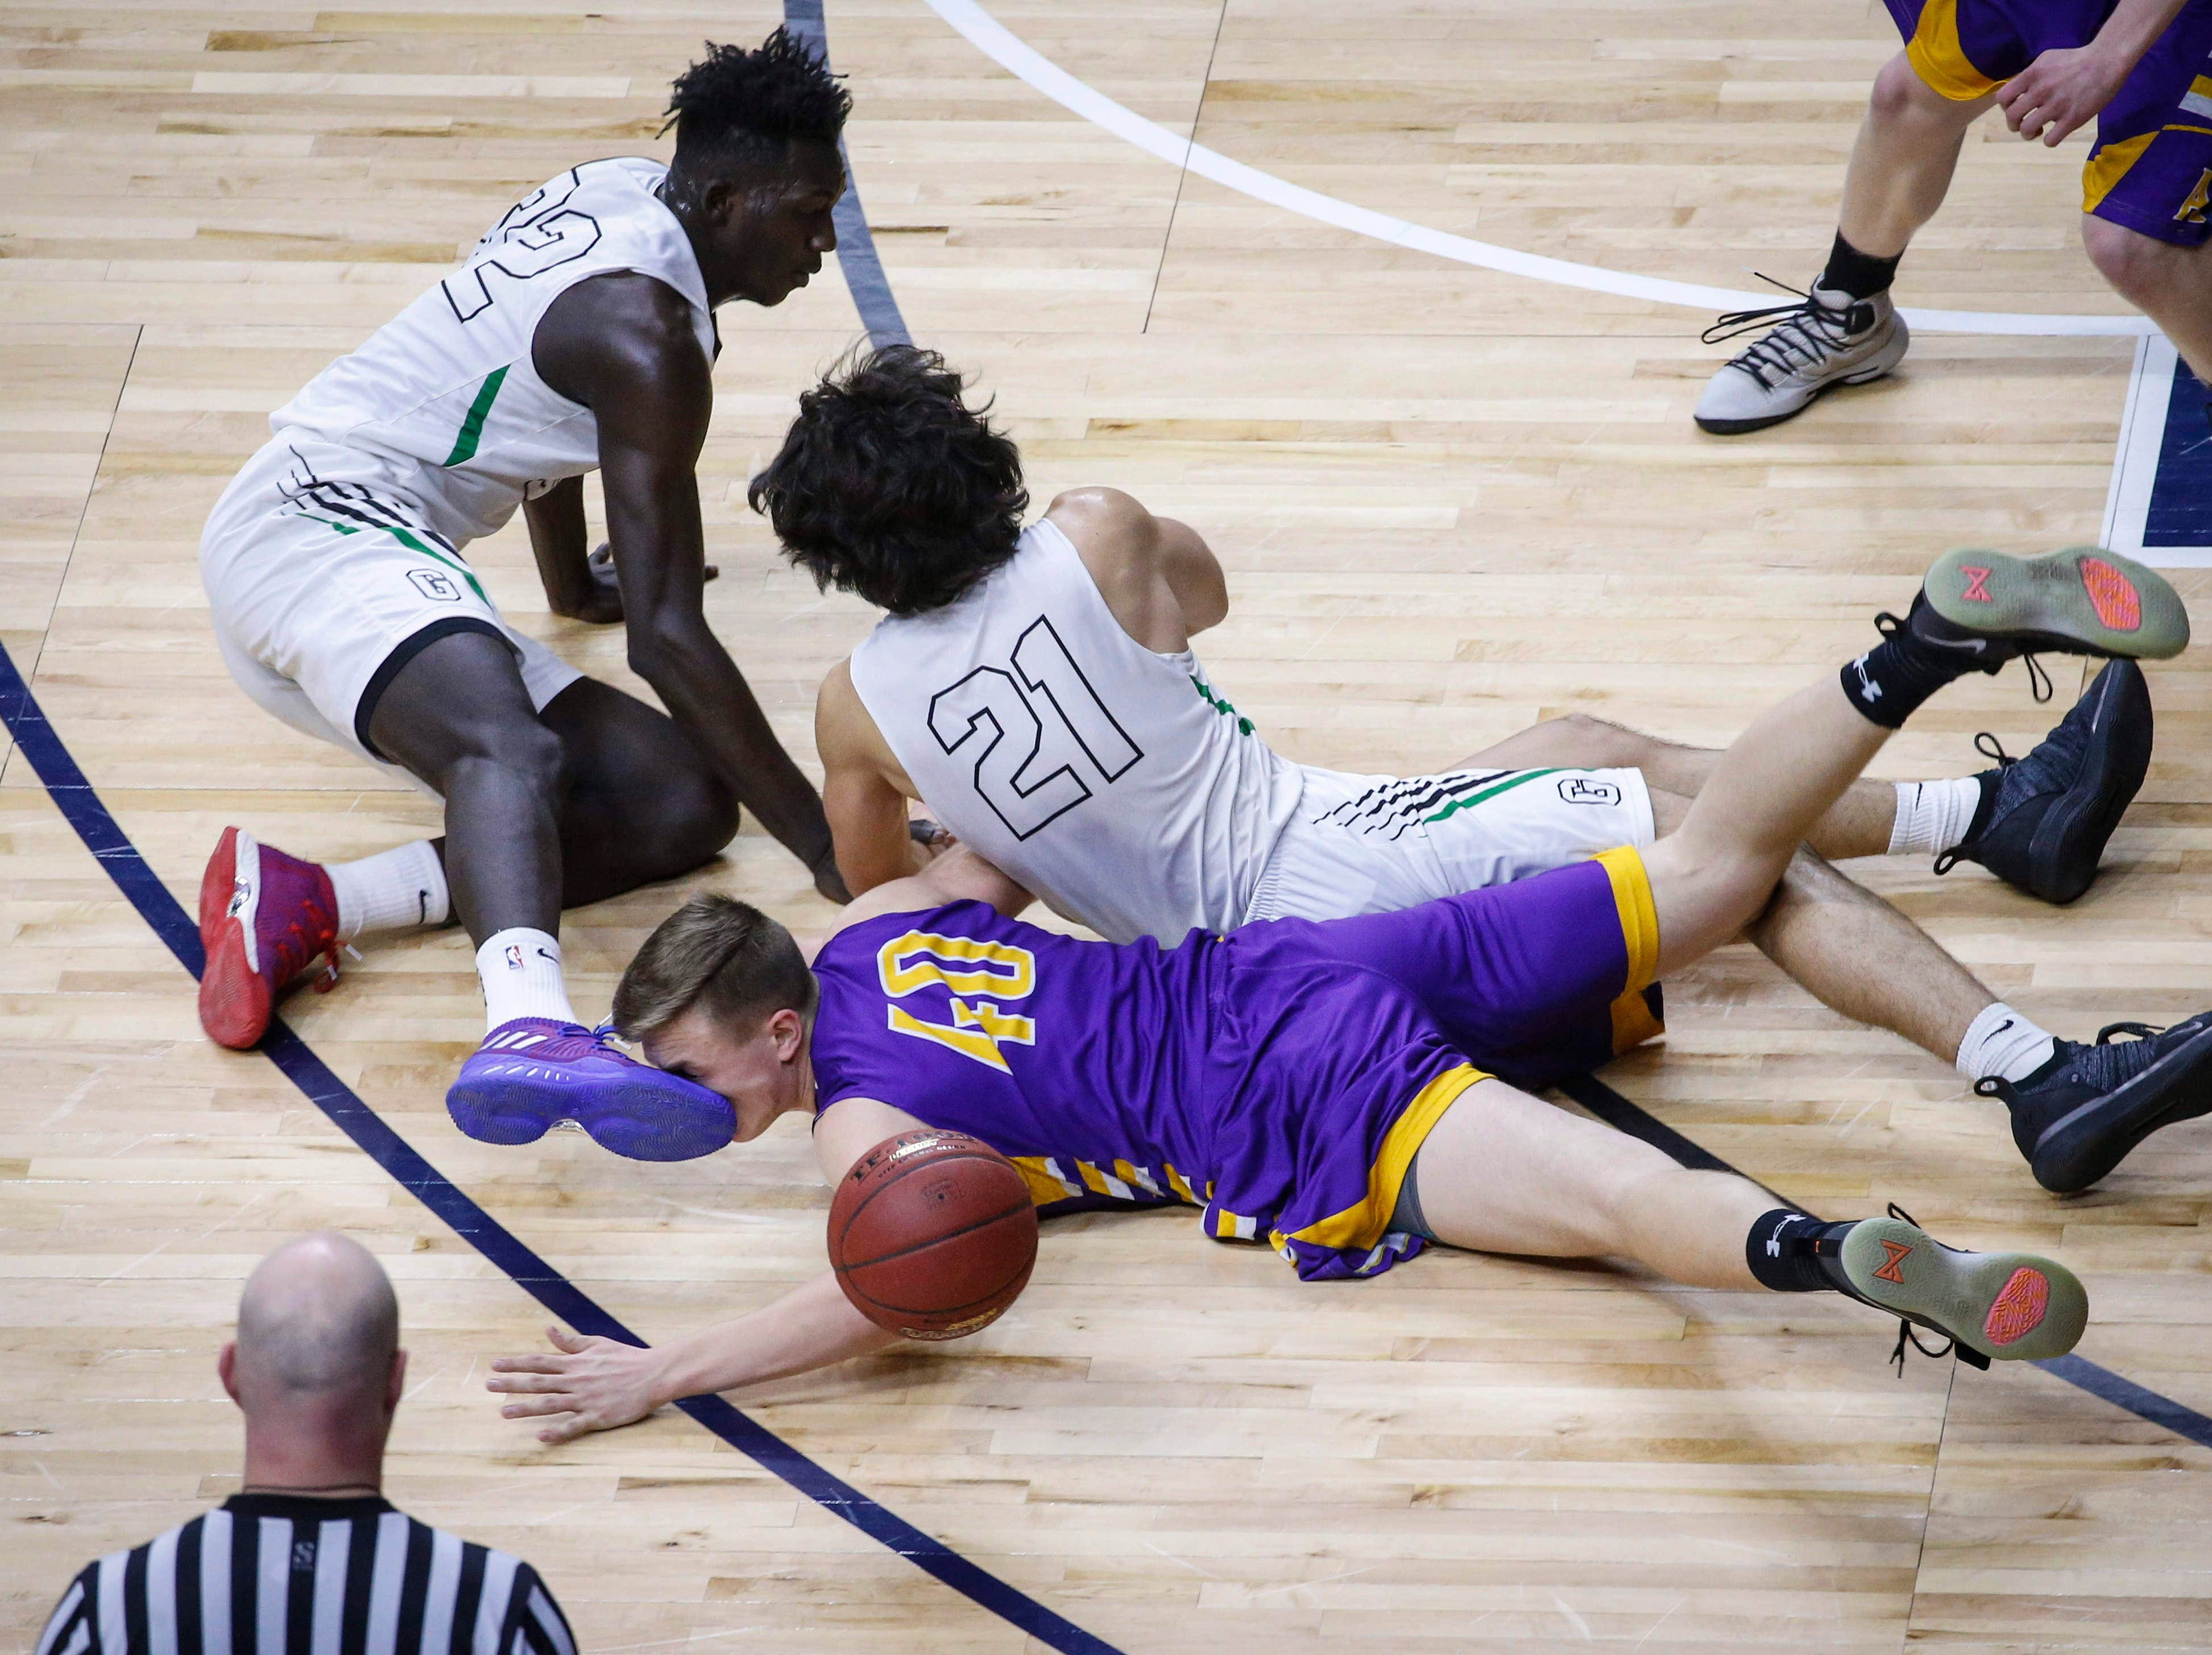 Alburnett sophomore Shane Neighbor gets a face full of Grand View Christian senior Harouna Sissoko's shoe as they scramble for a loose ball in the first quarter during the Class 1A boys state basketball championship game on Friday, March 8, 2019, at Wells Fargo Arena in Des Moines.